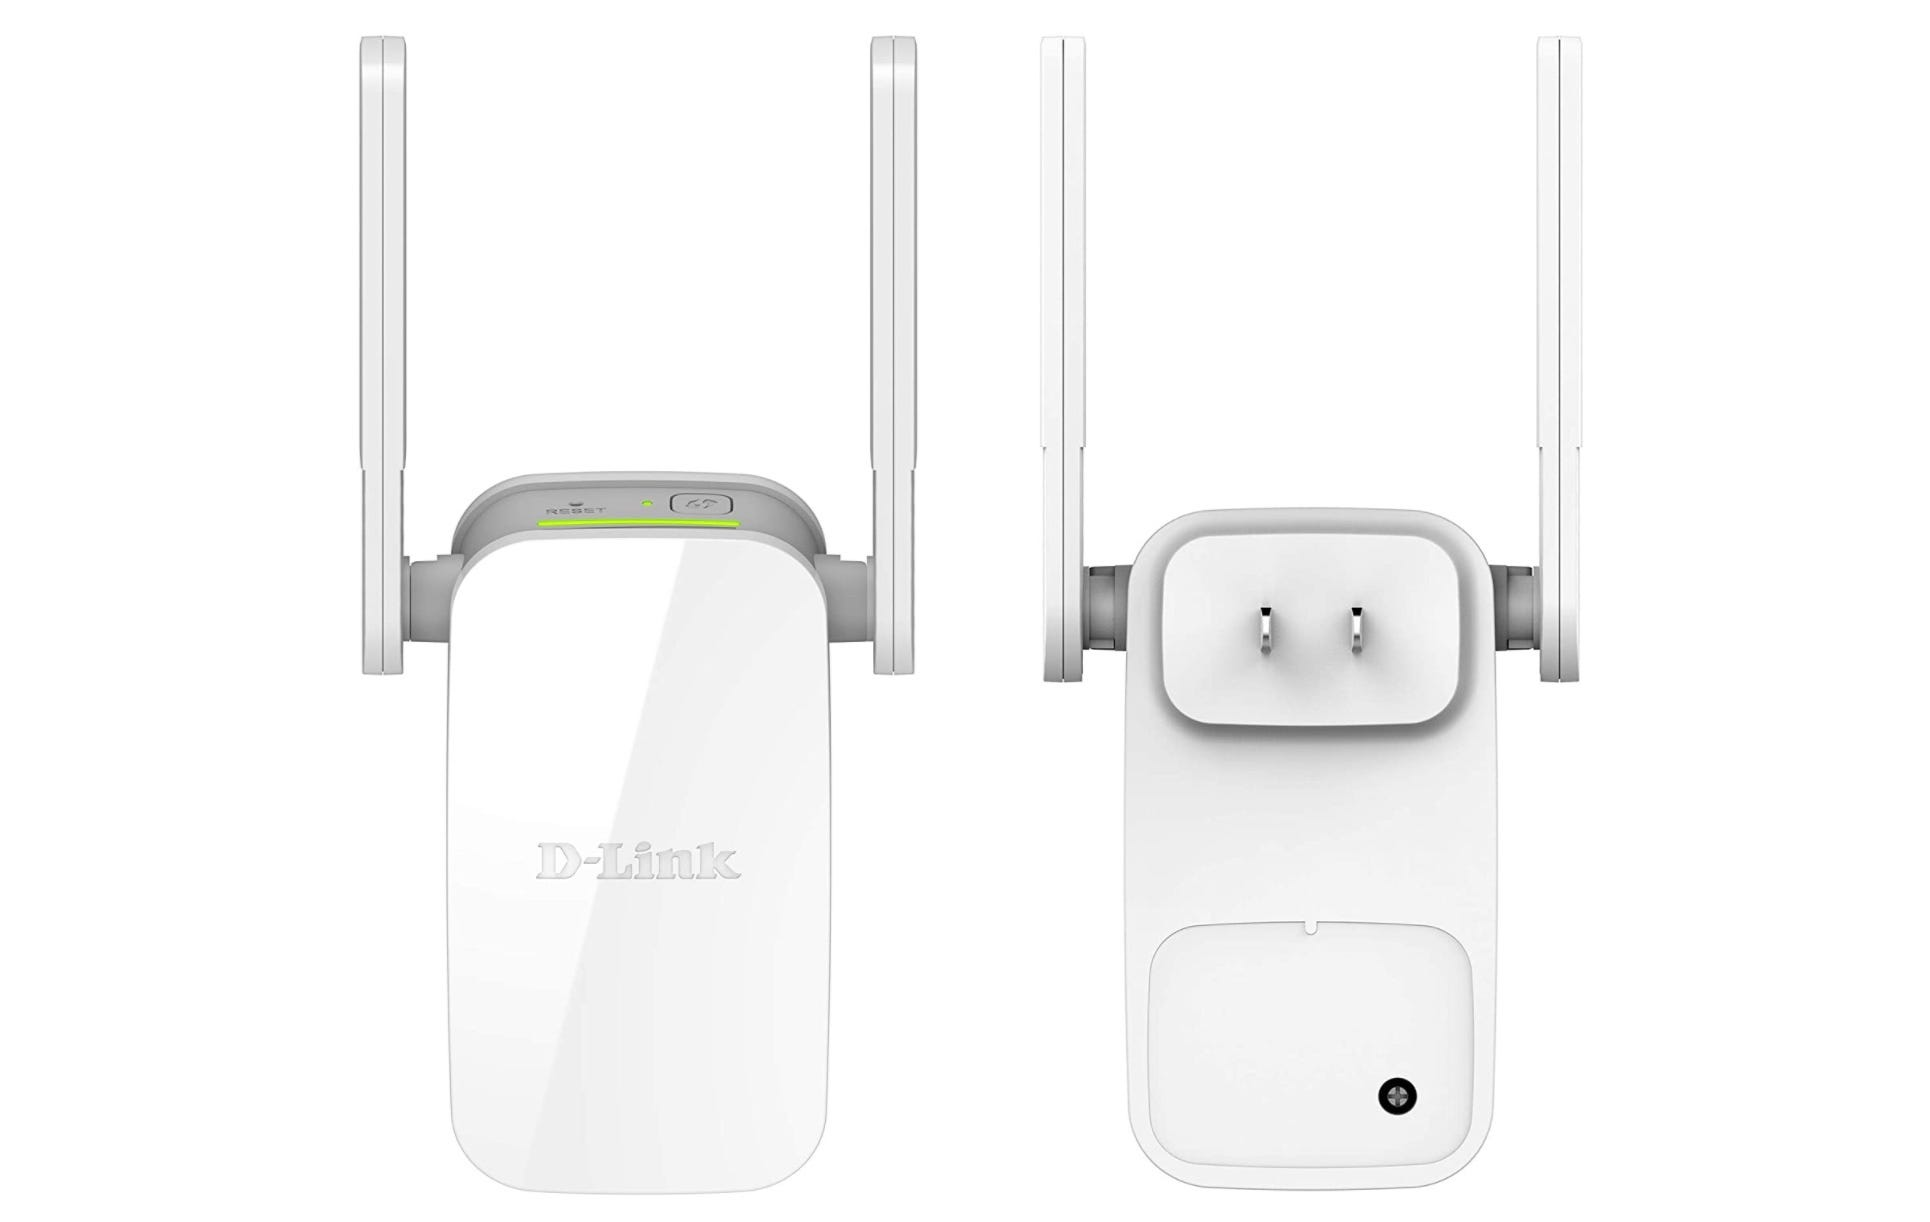 D-Link Wi-Fi booster